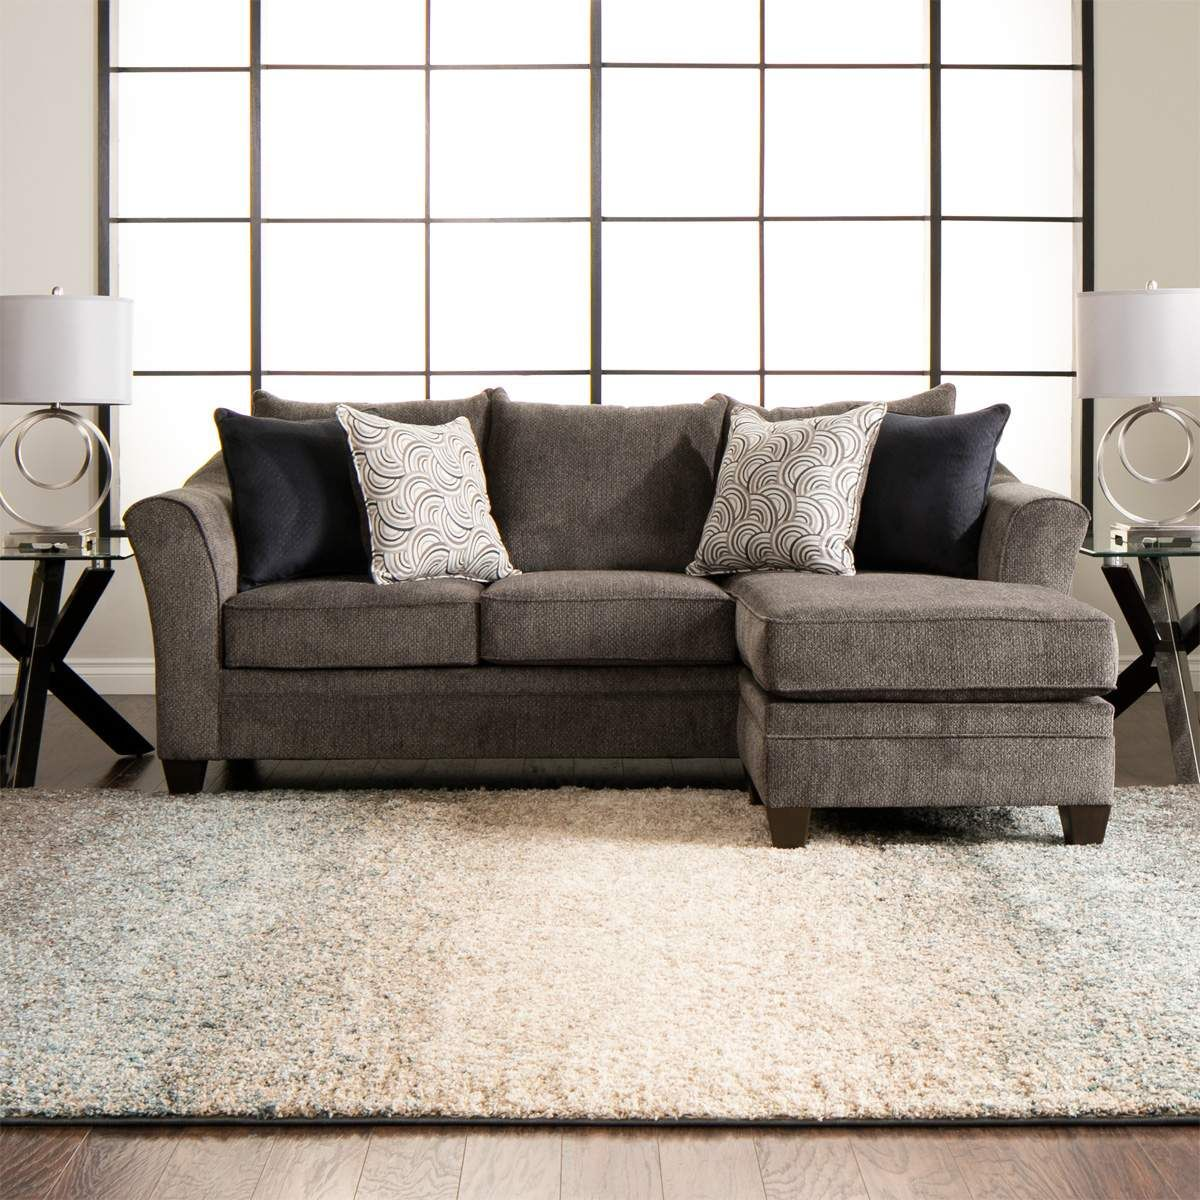 Admirable Albany Sofa Chaise In Pewter In 2019 For The Home Ibusinesslaw Wood Chair Design Ideas Ibusinesslaworg